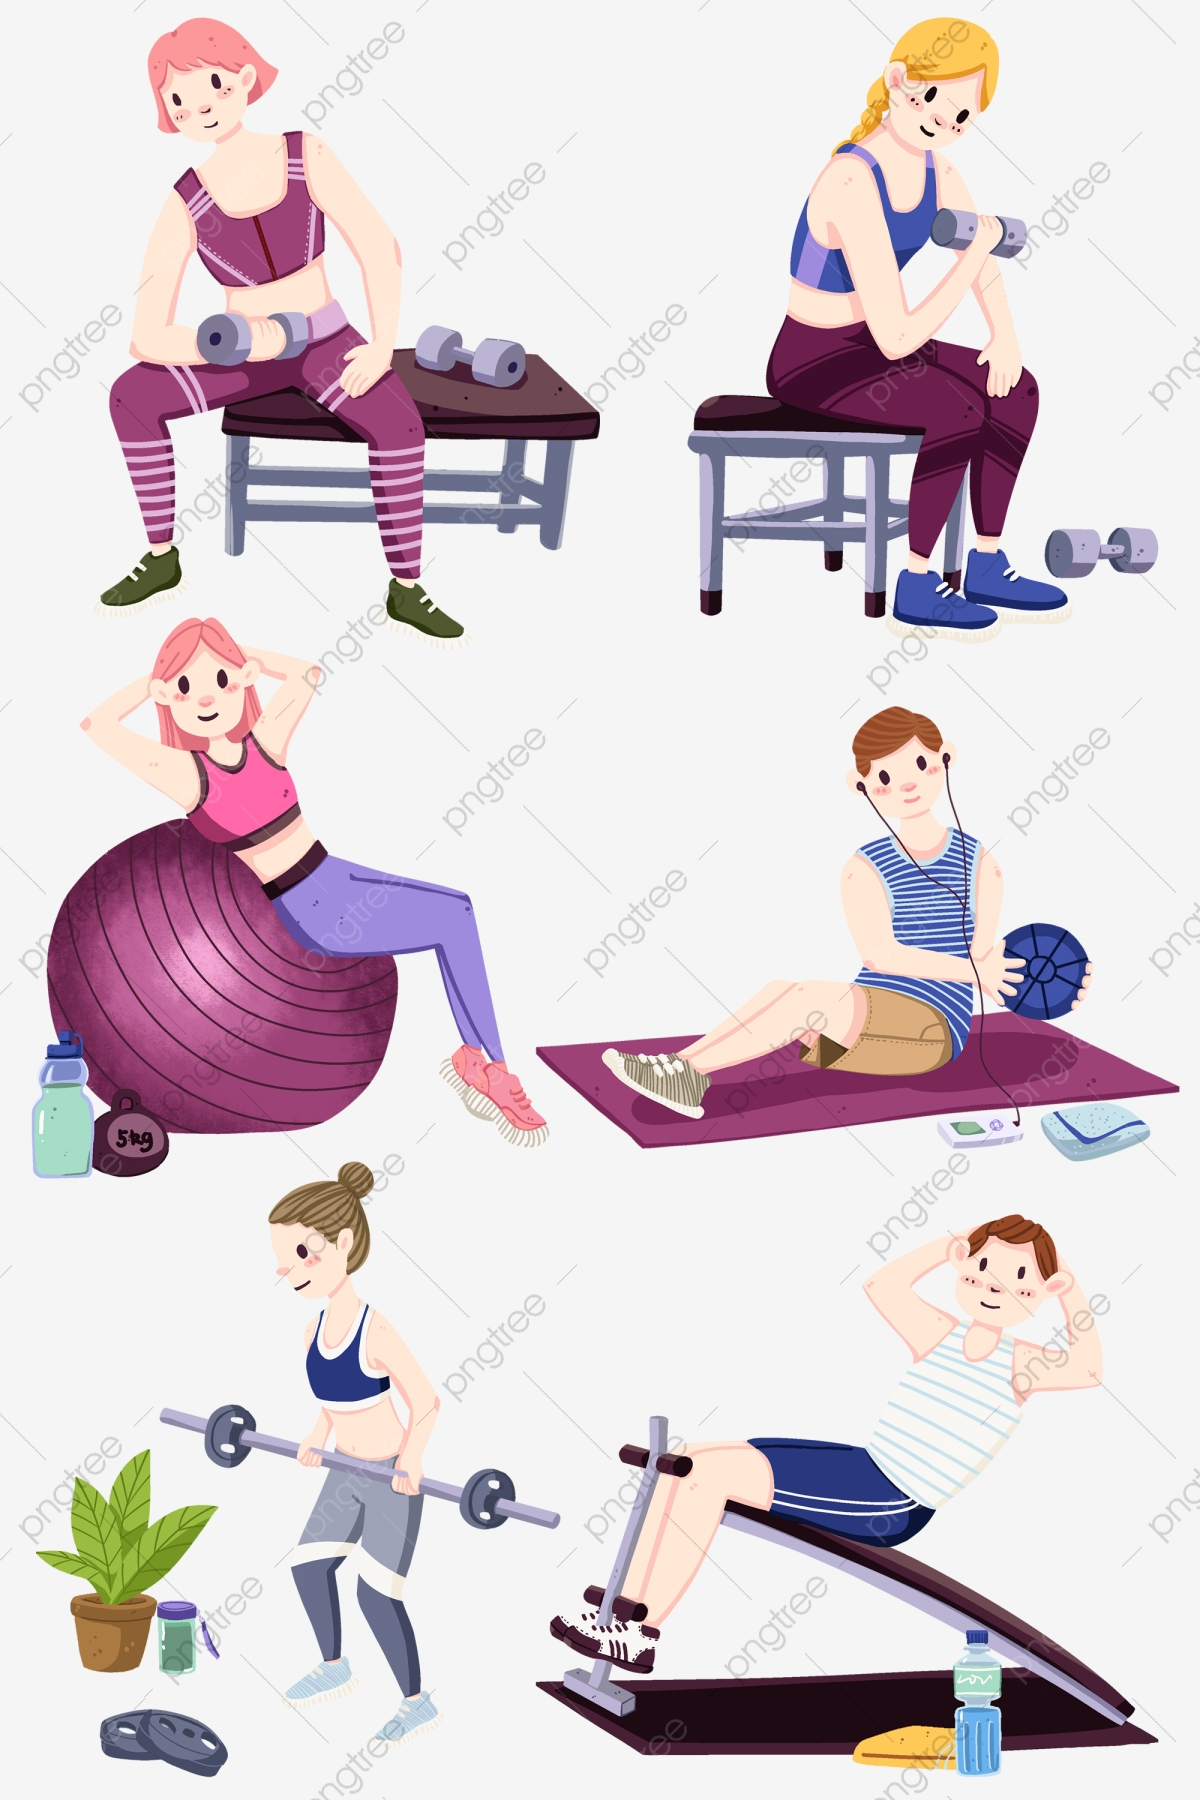 Healthy Body Fitness Woman Sporty Woman Fitness Weight Loss Health Fitness Lose Weight Png Transparent Clipart Image And Psd File For Free Download